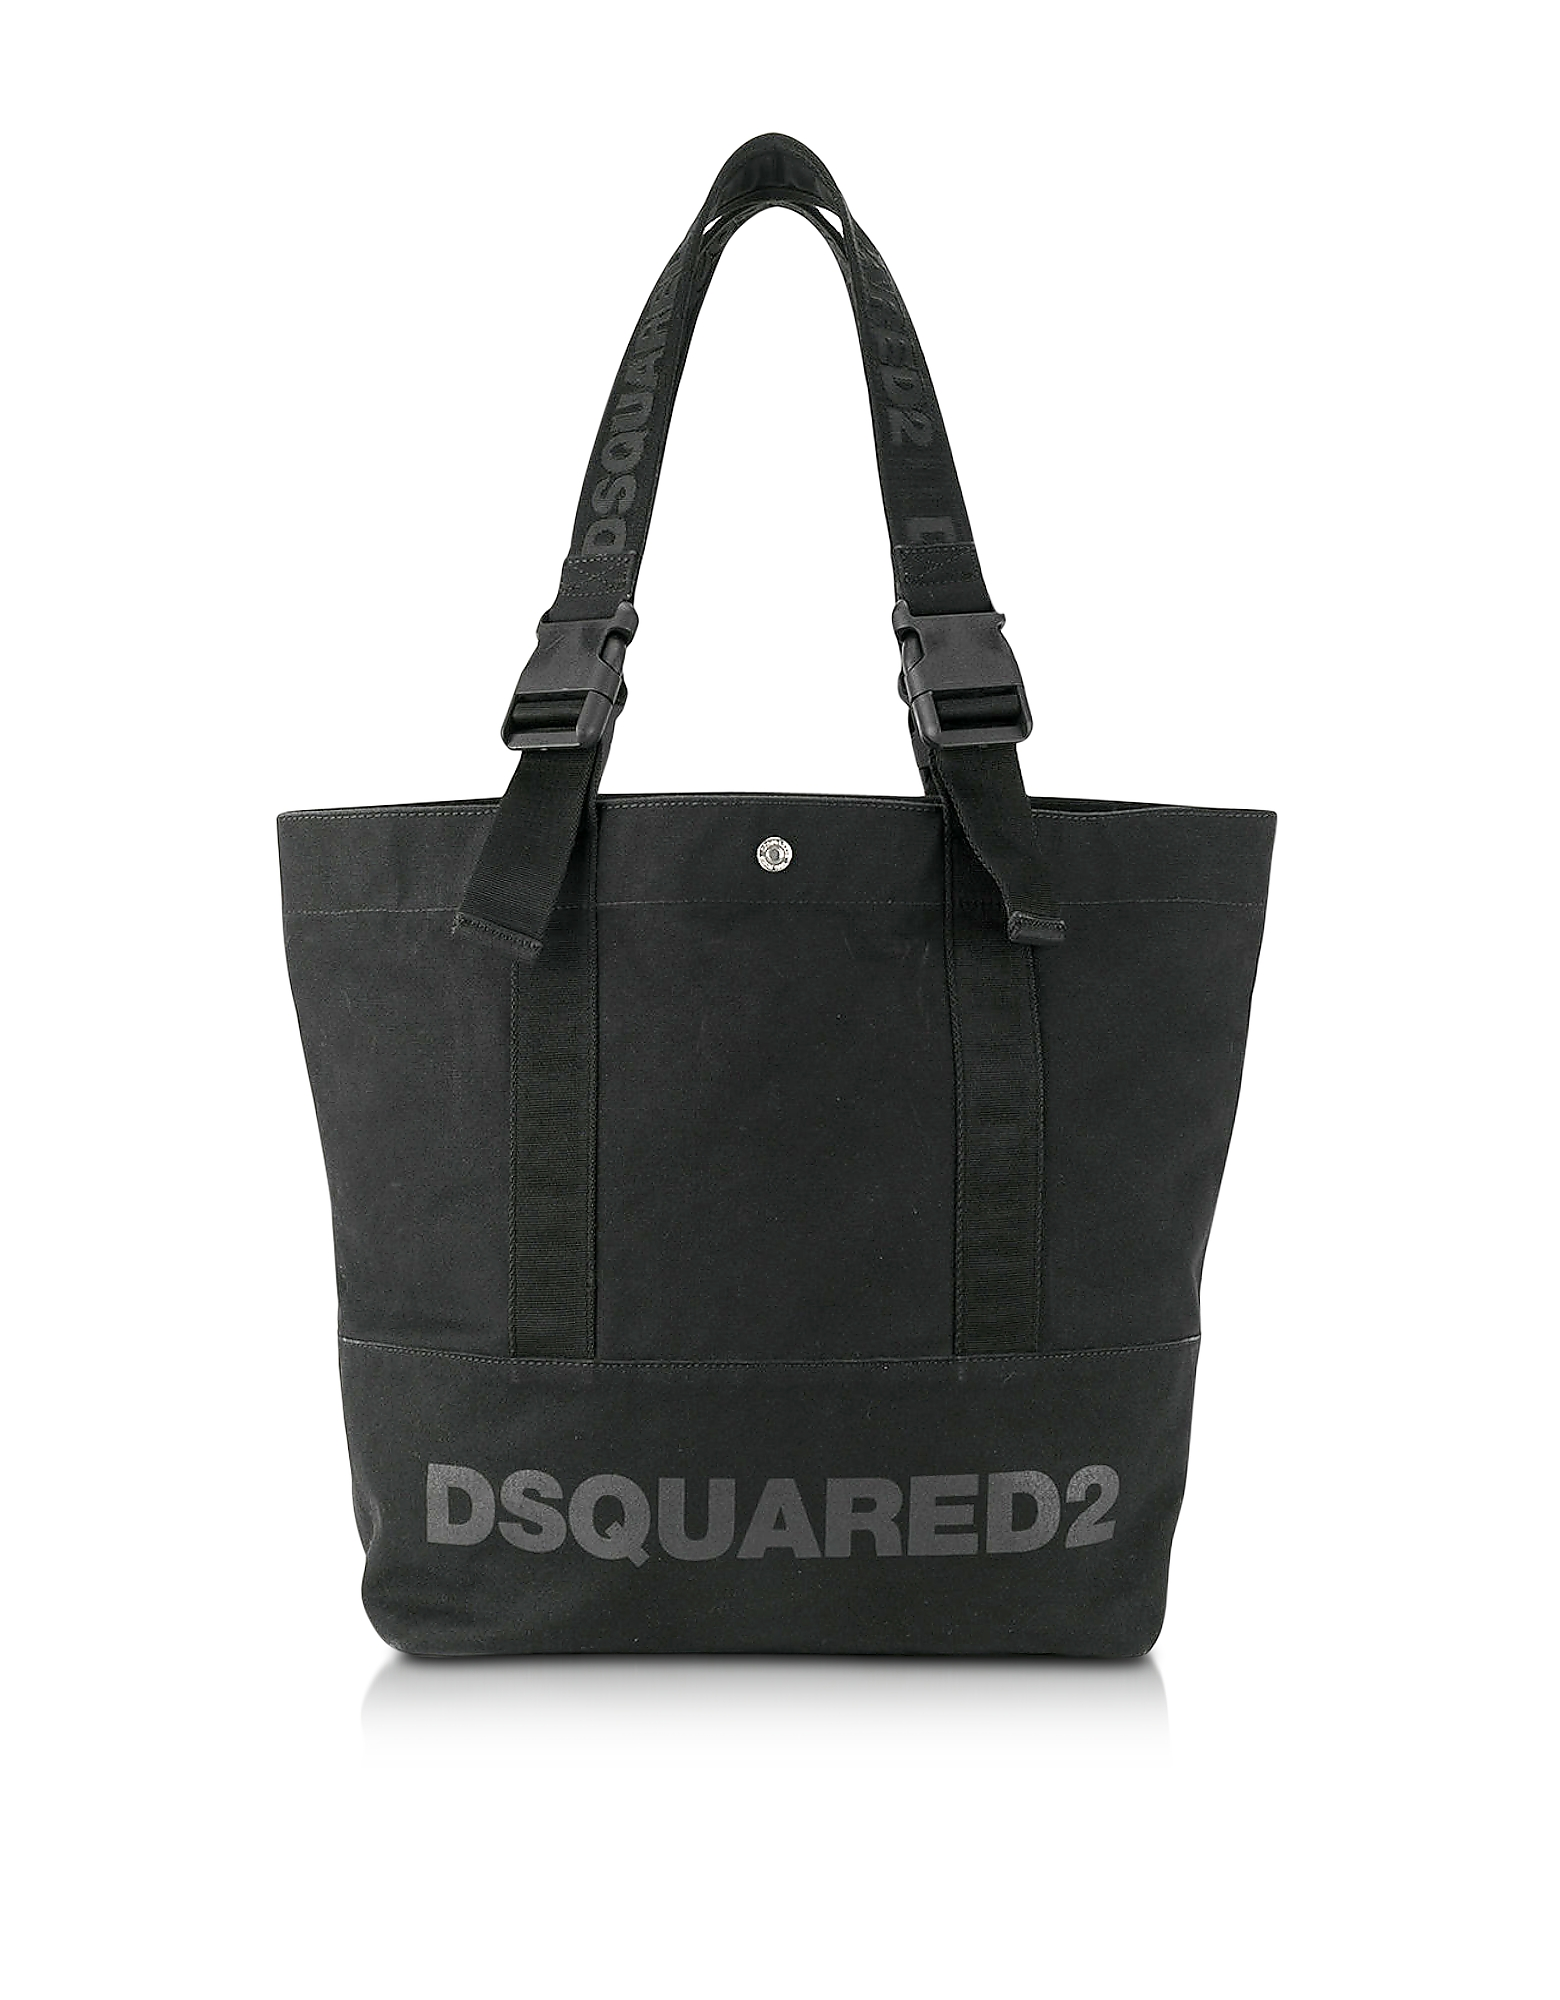 DSquared2 Men's Bags, Black Canvas Vertical Shopping Bag w/Funny Handles